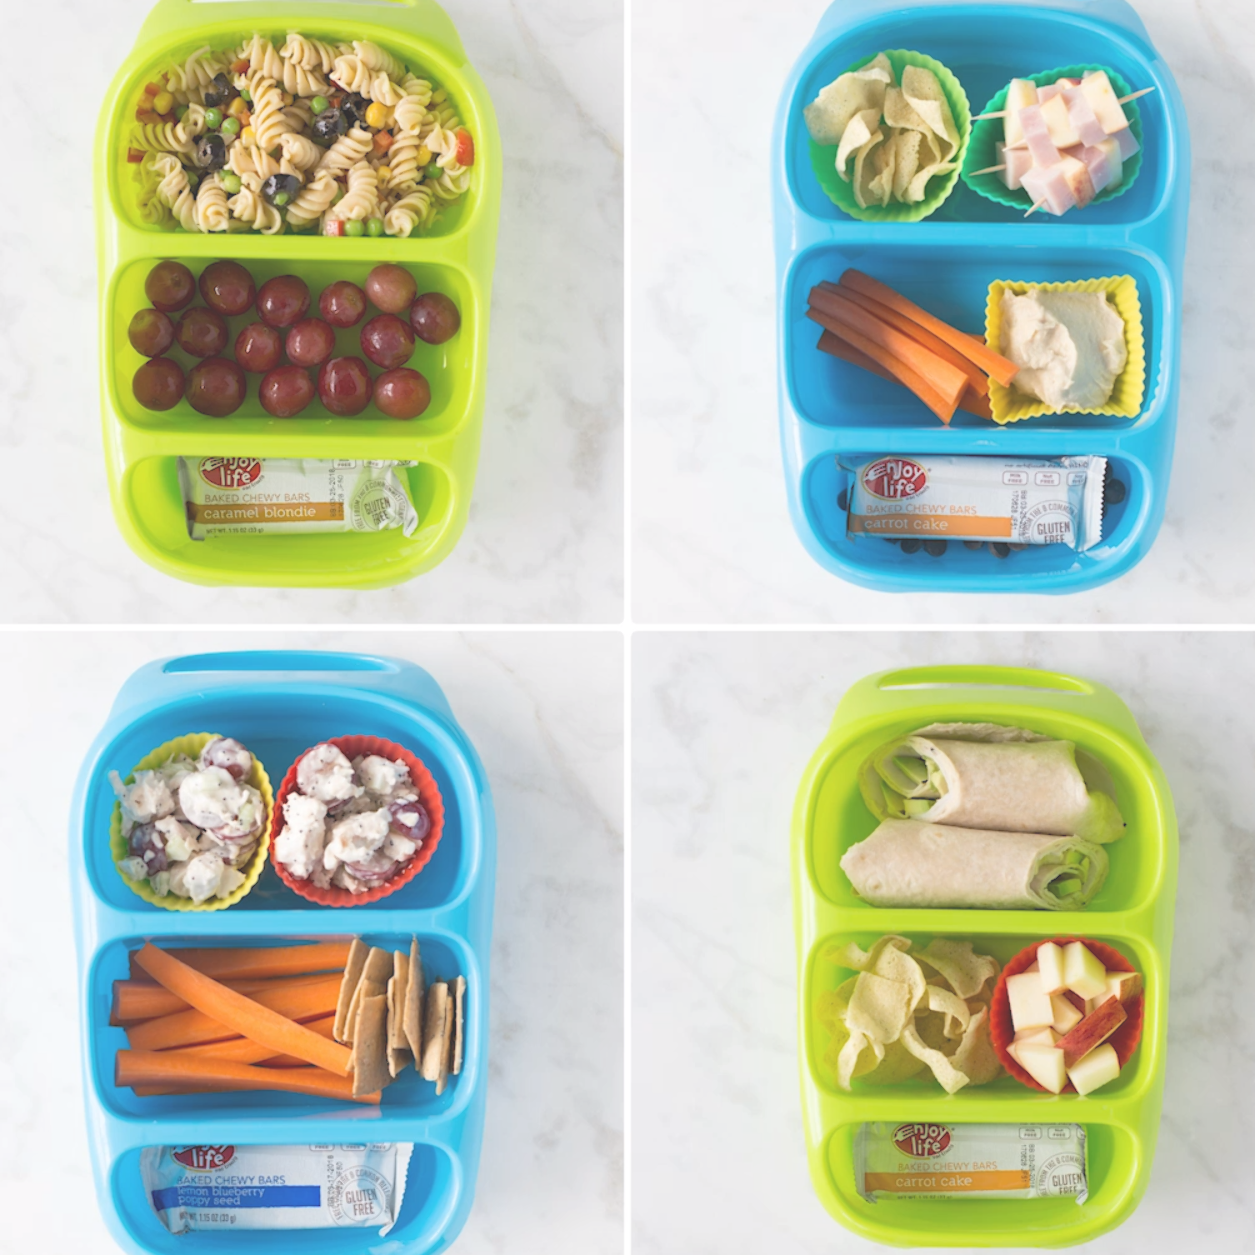 4 Allergy-Friendly Lunches! Easy, KID-FRIENDLY lunch ideas including delicious snacks from Enjoy Li